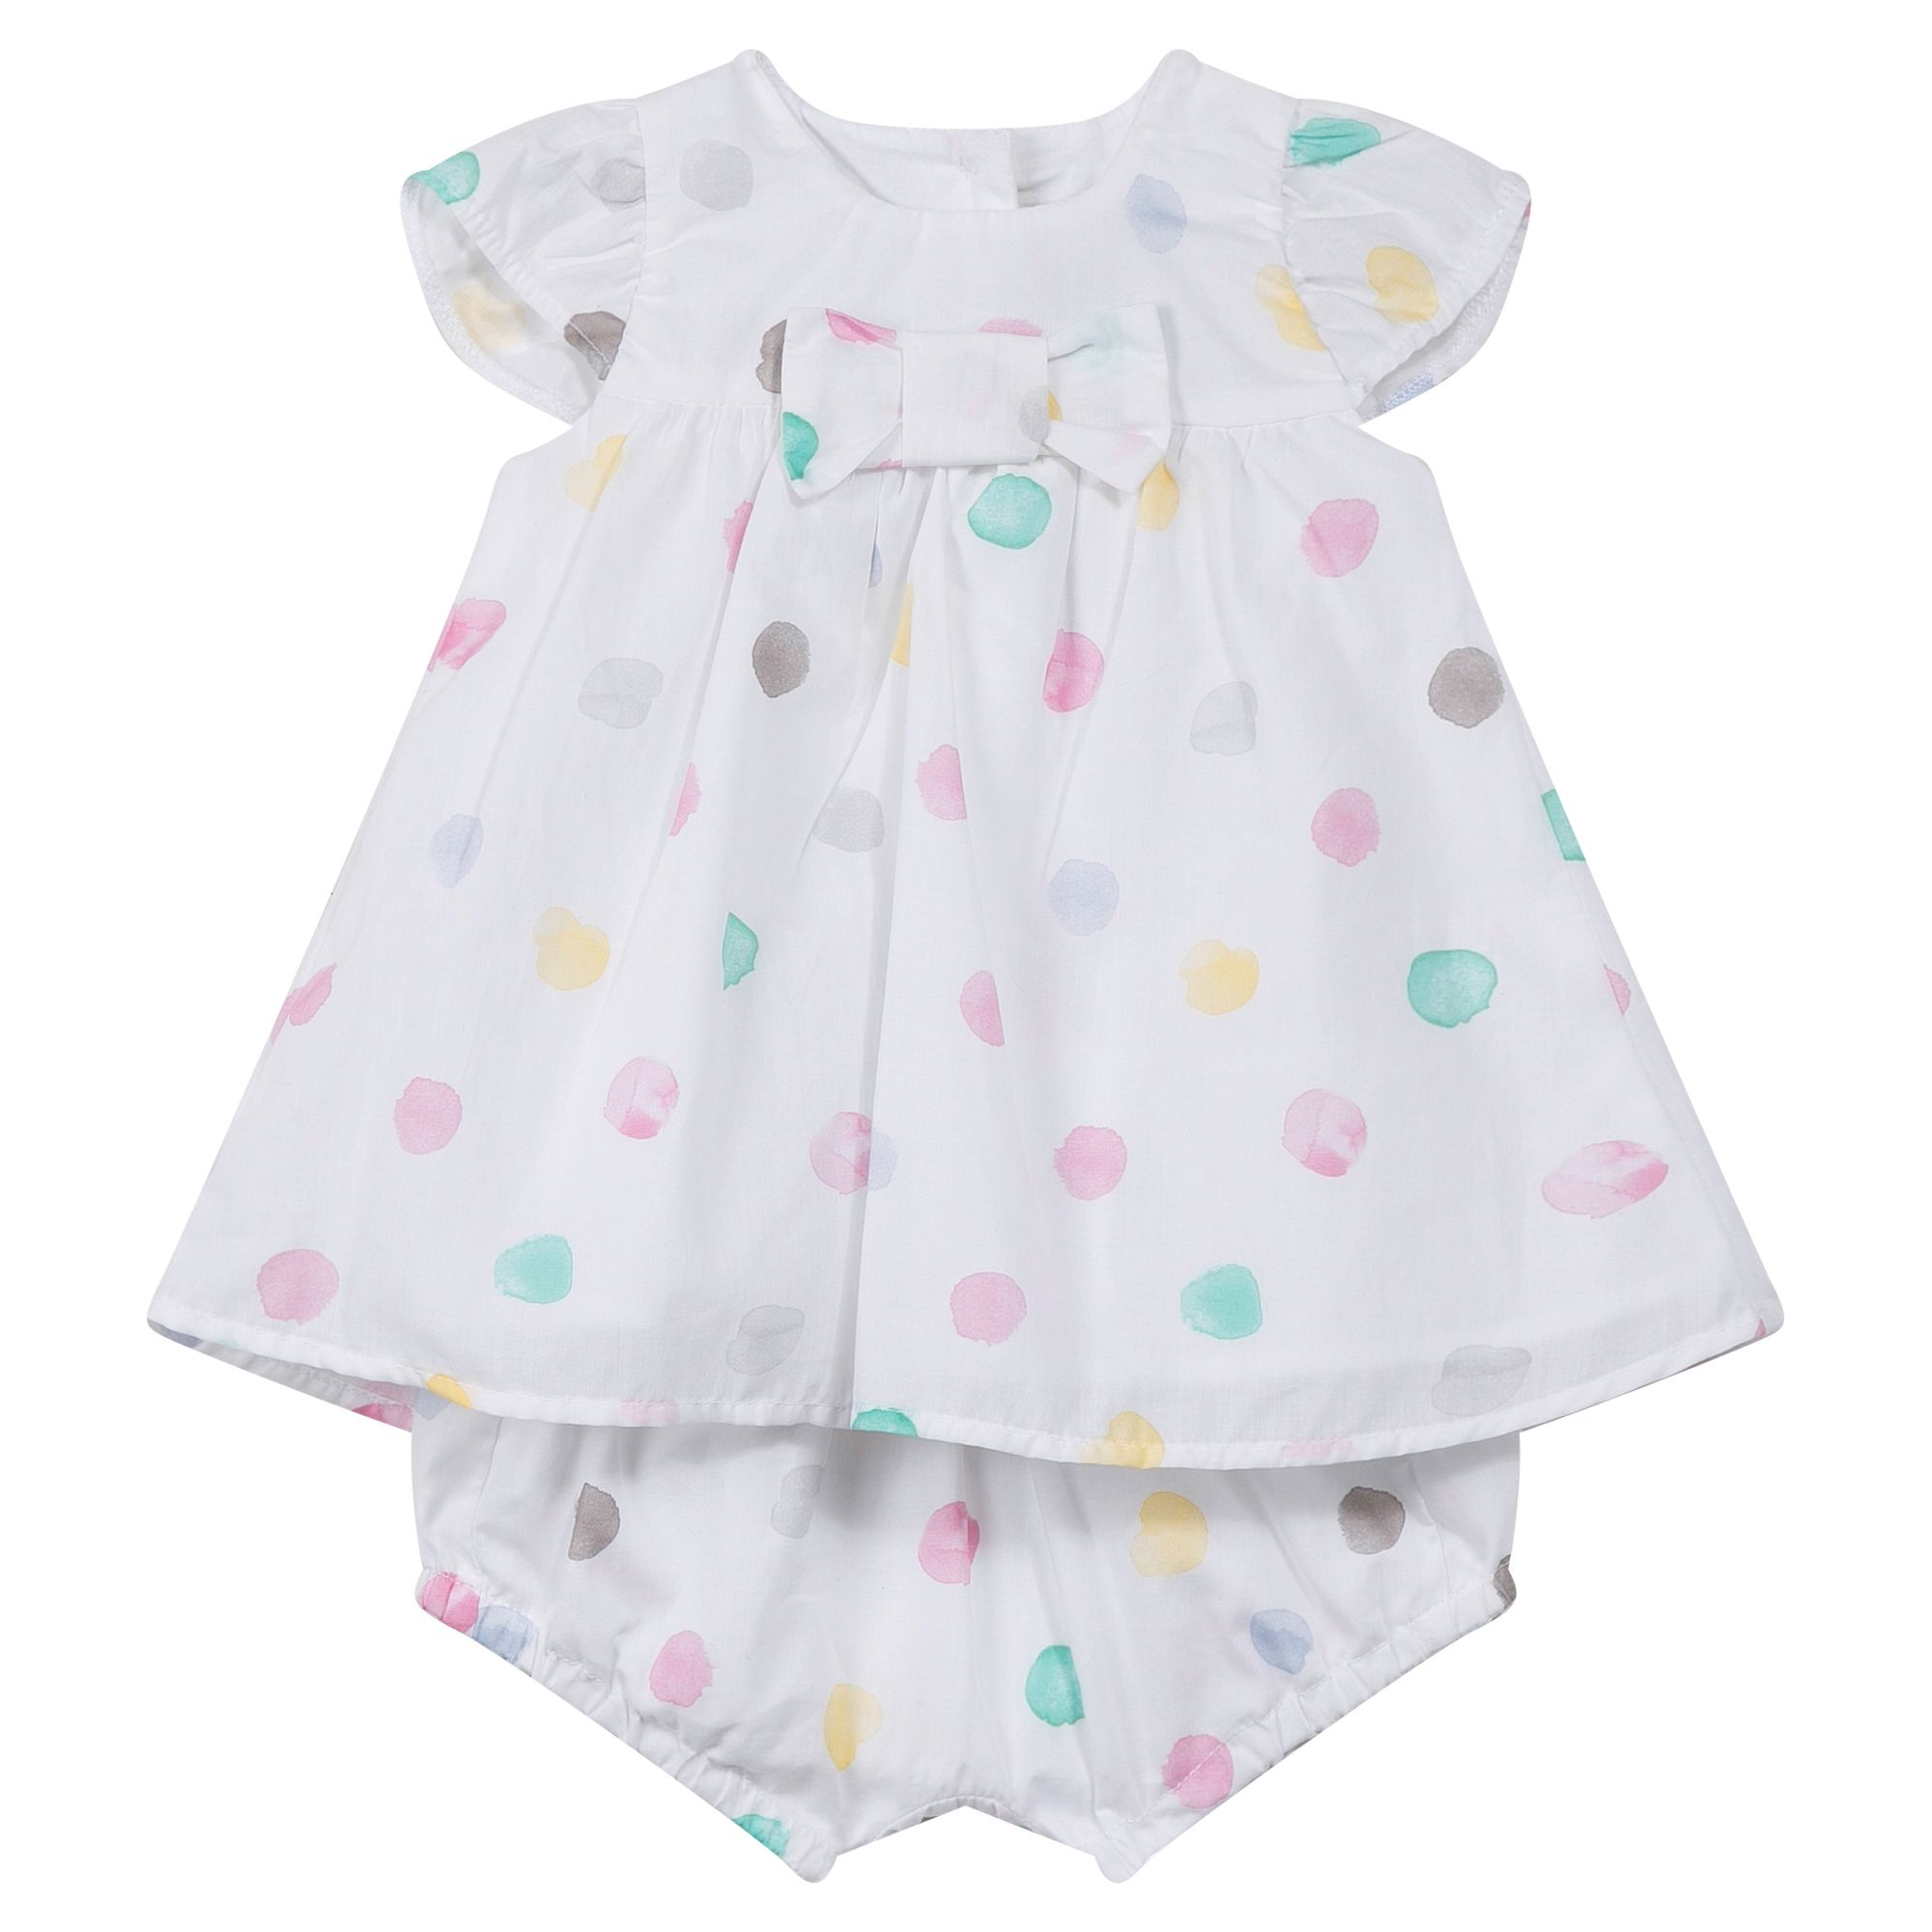 Absorba Absorba Baby Girls Polka Dot Dress with Bloomers, Pink